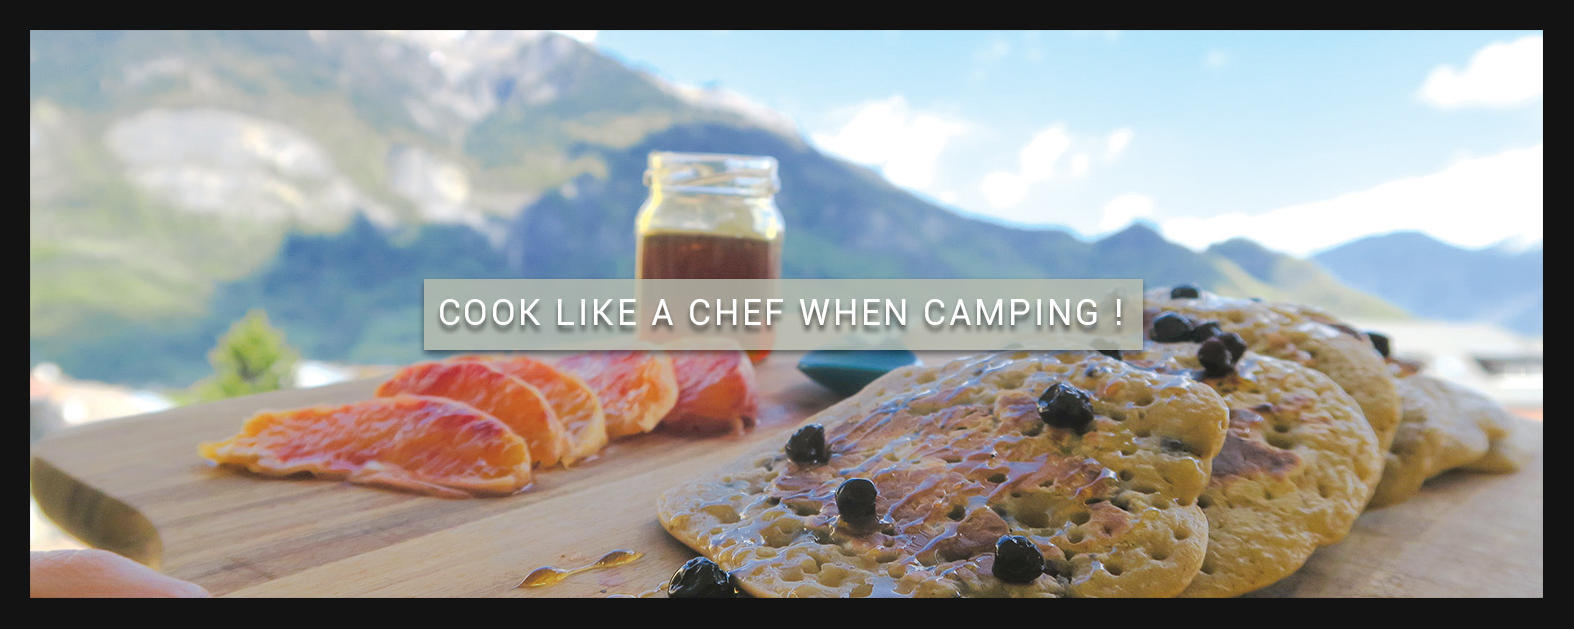 cooking set challenge camping mountain hiking quechua decathlon